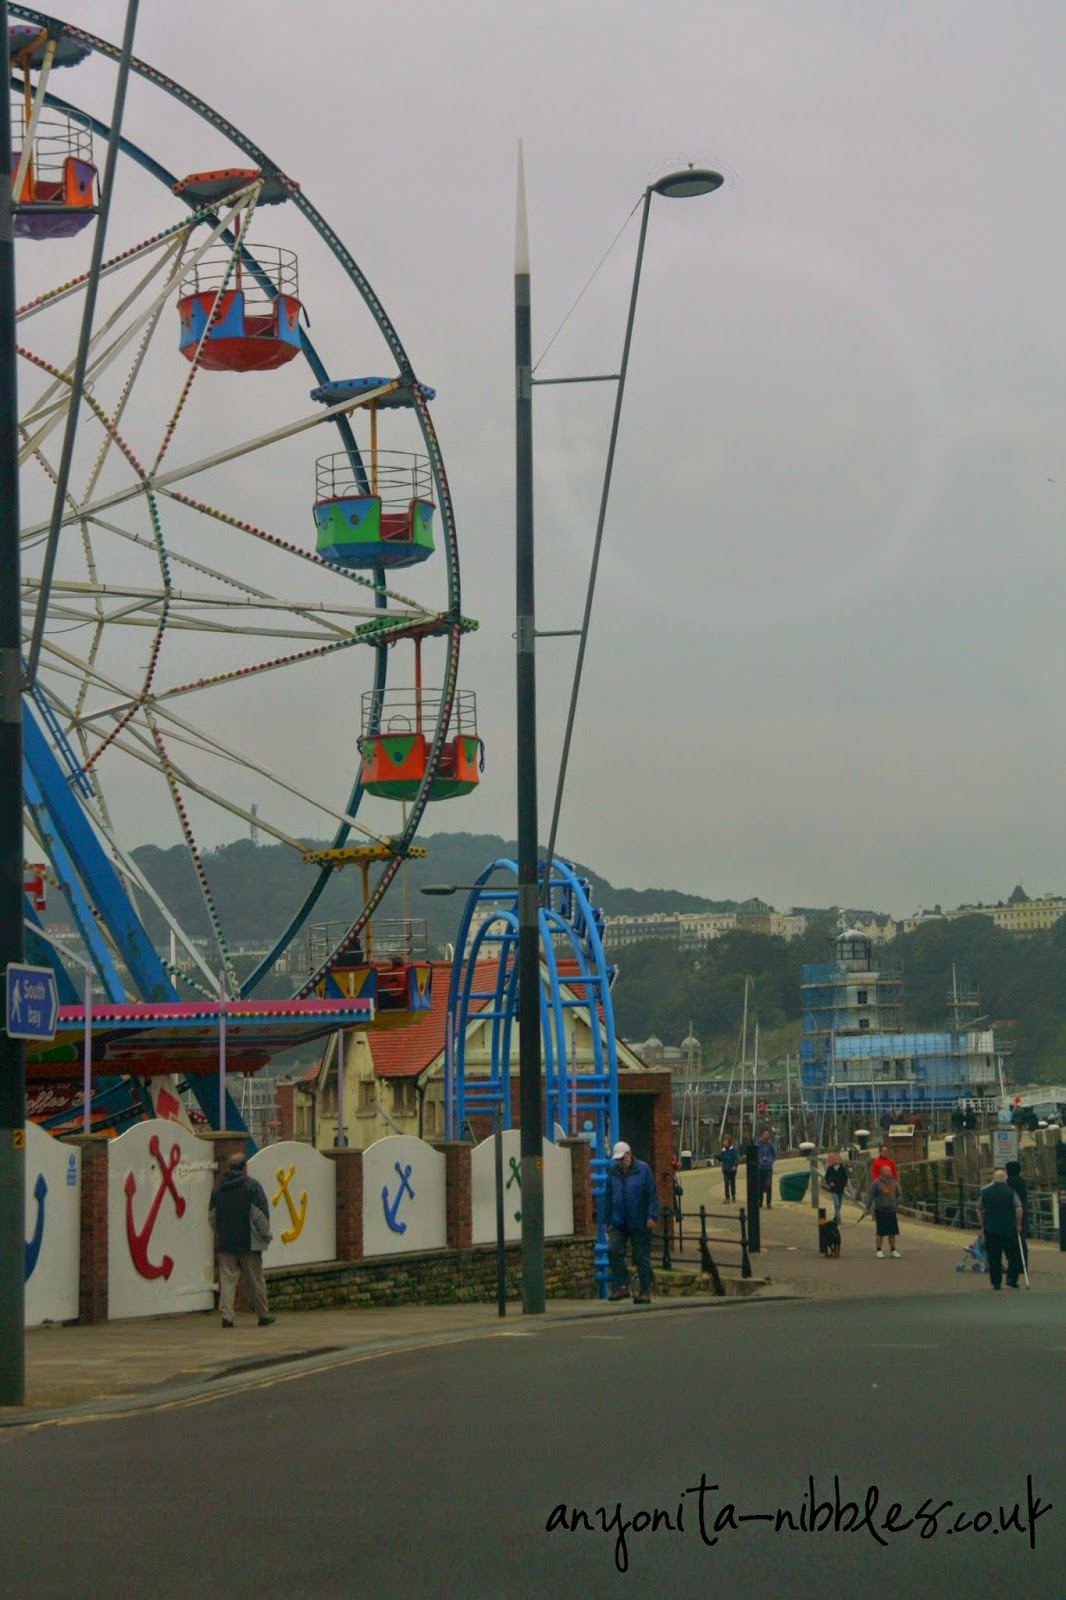 Scarborough amusements | Anyonita-nibbles.co.uk